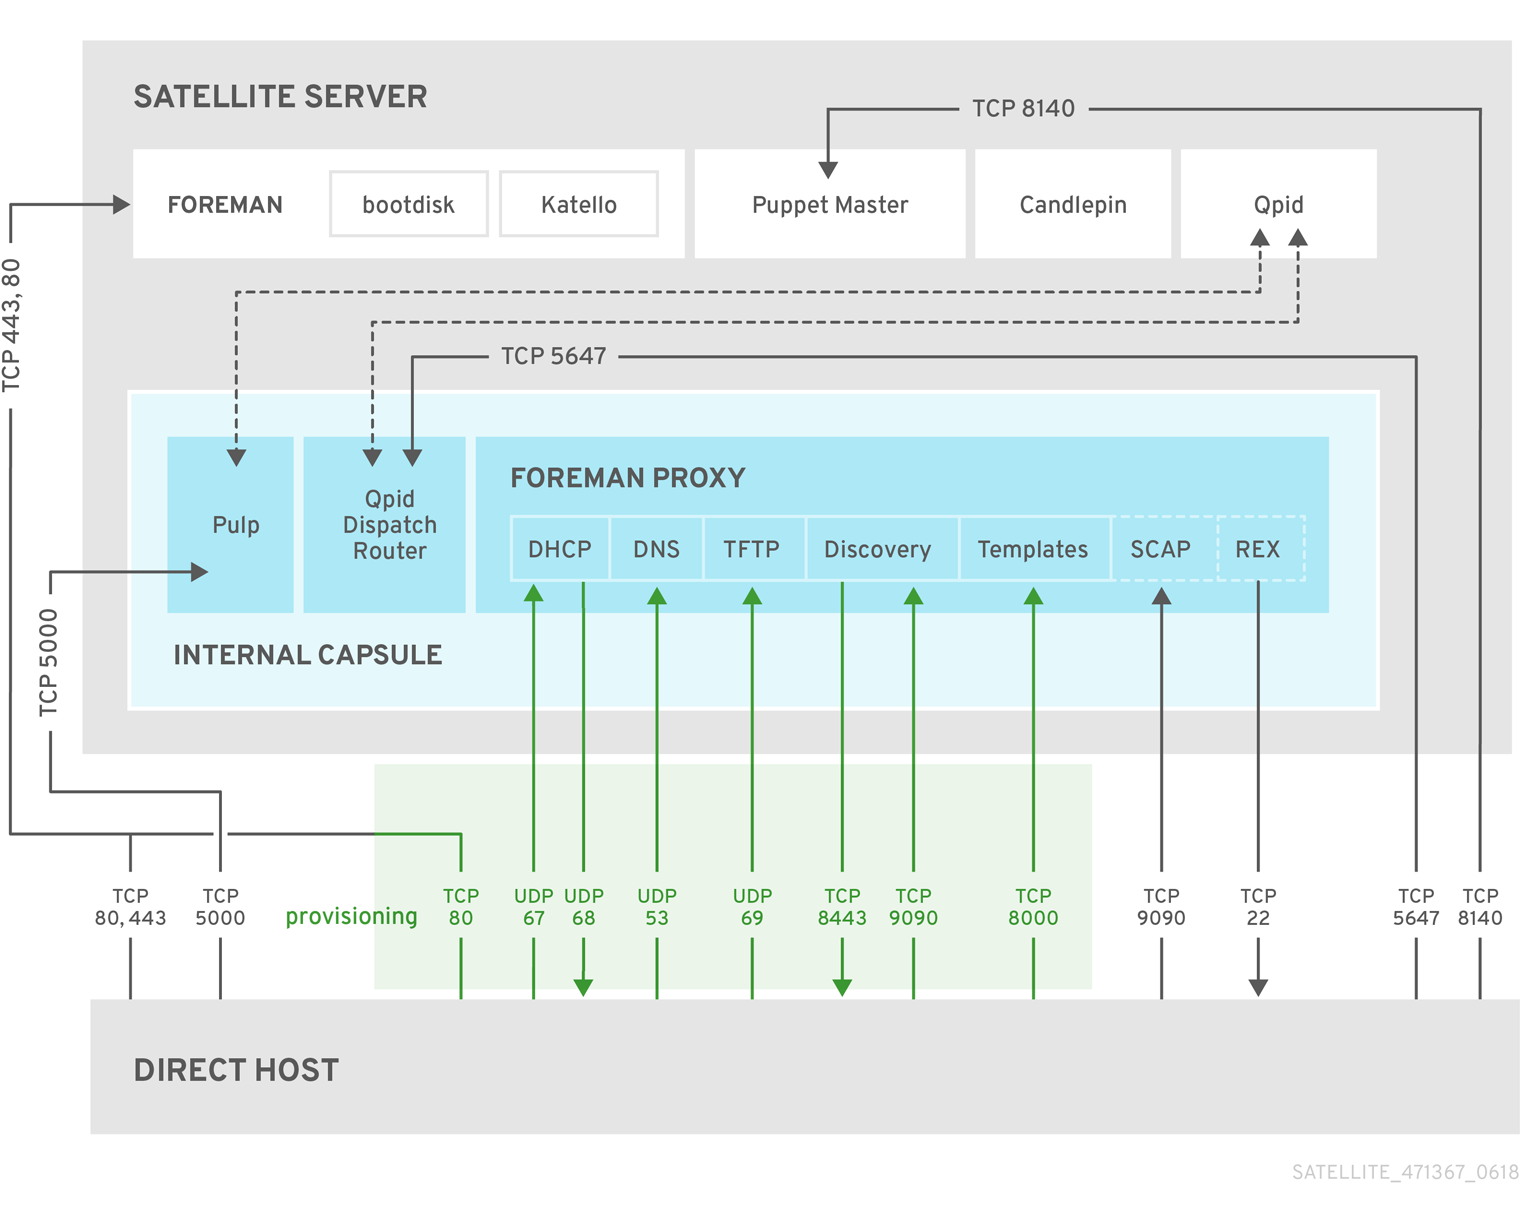 RedHat Satellite topology with direct host